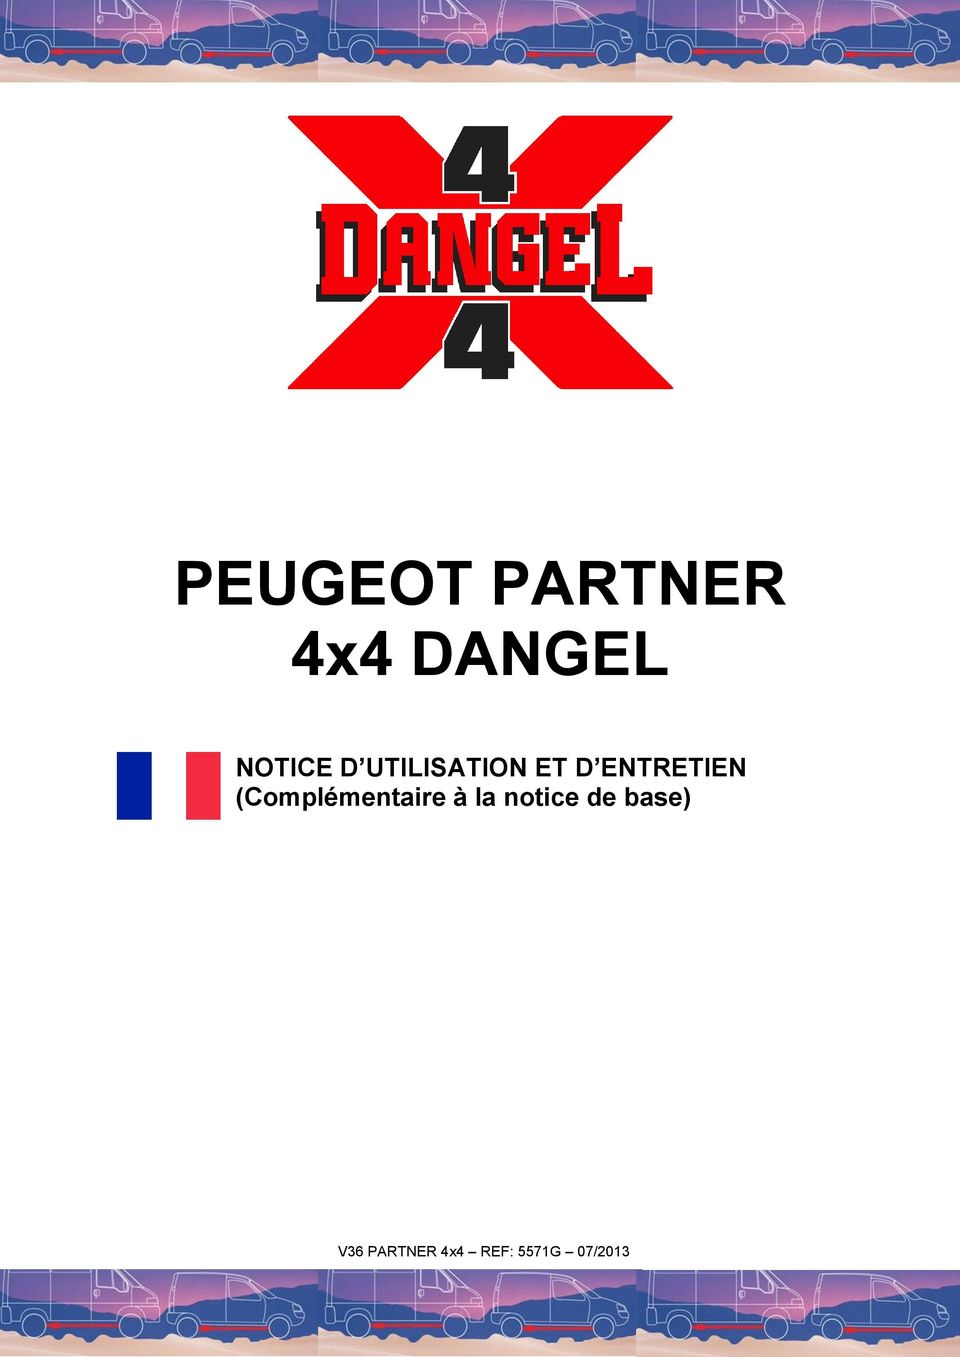 peugeot partner 4x4 dangel notice d utilisation et d. Black Bedroom Furniture Sets. Home Design Ideas